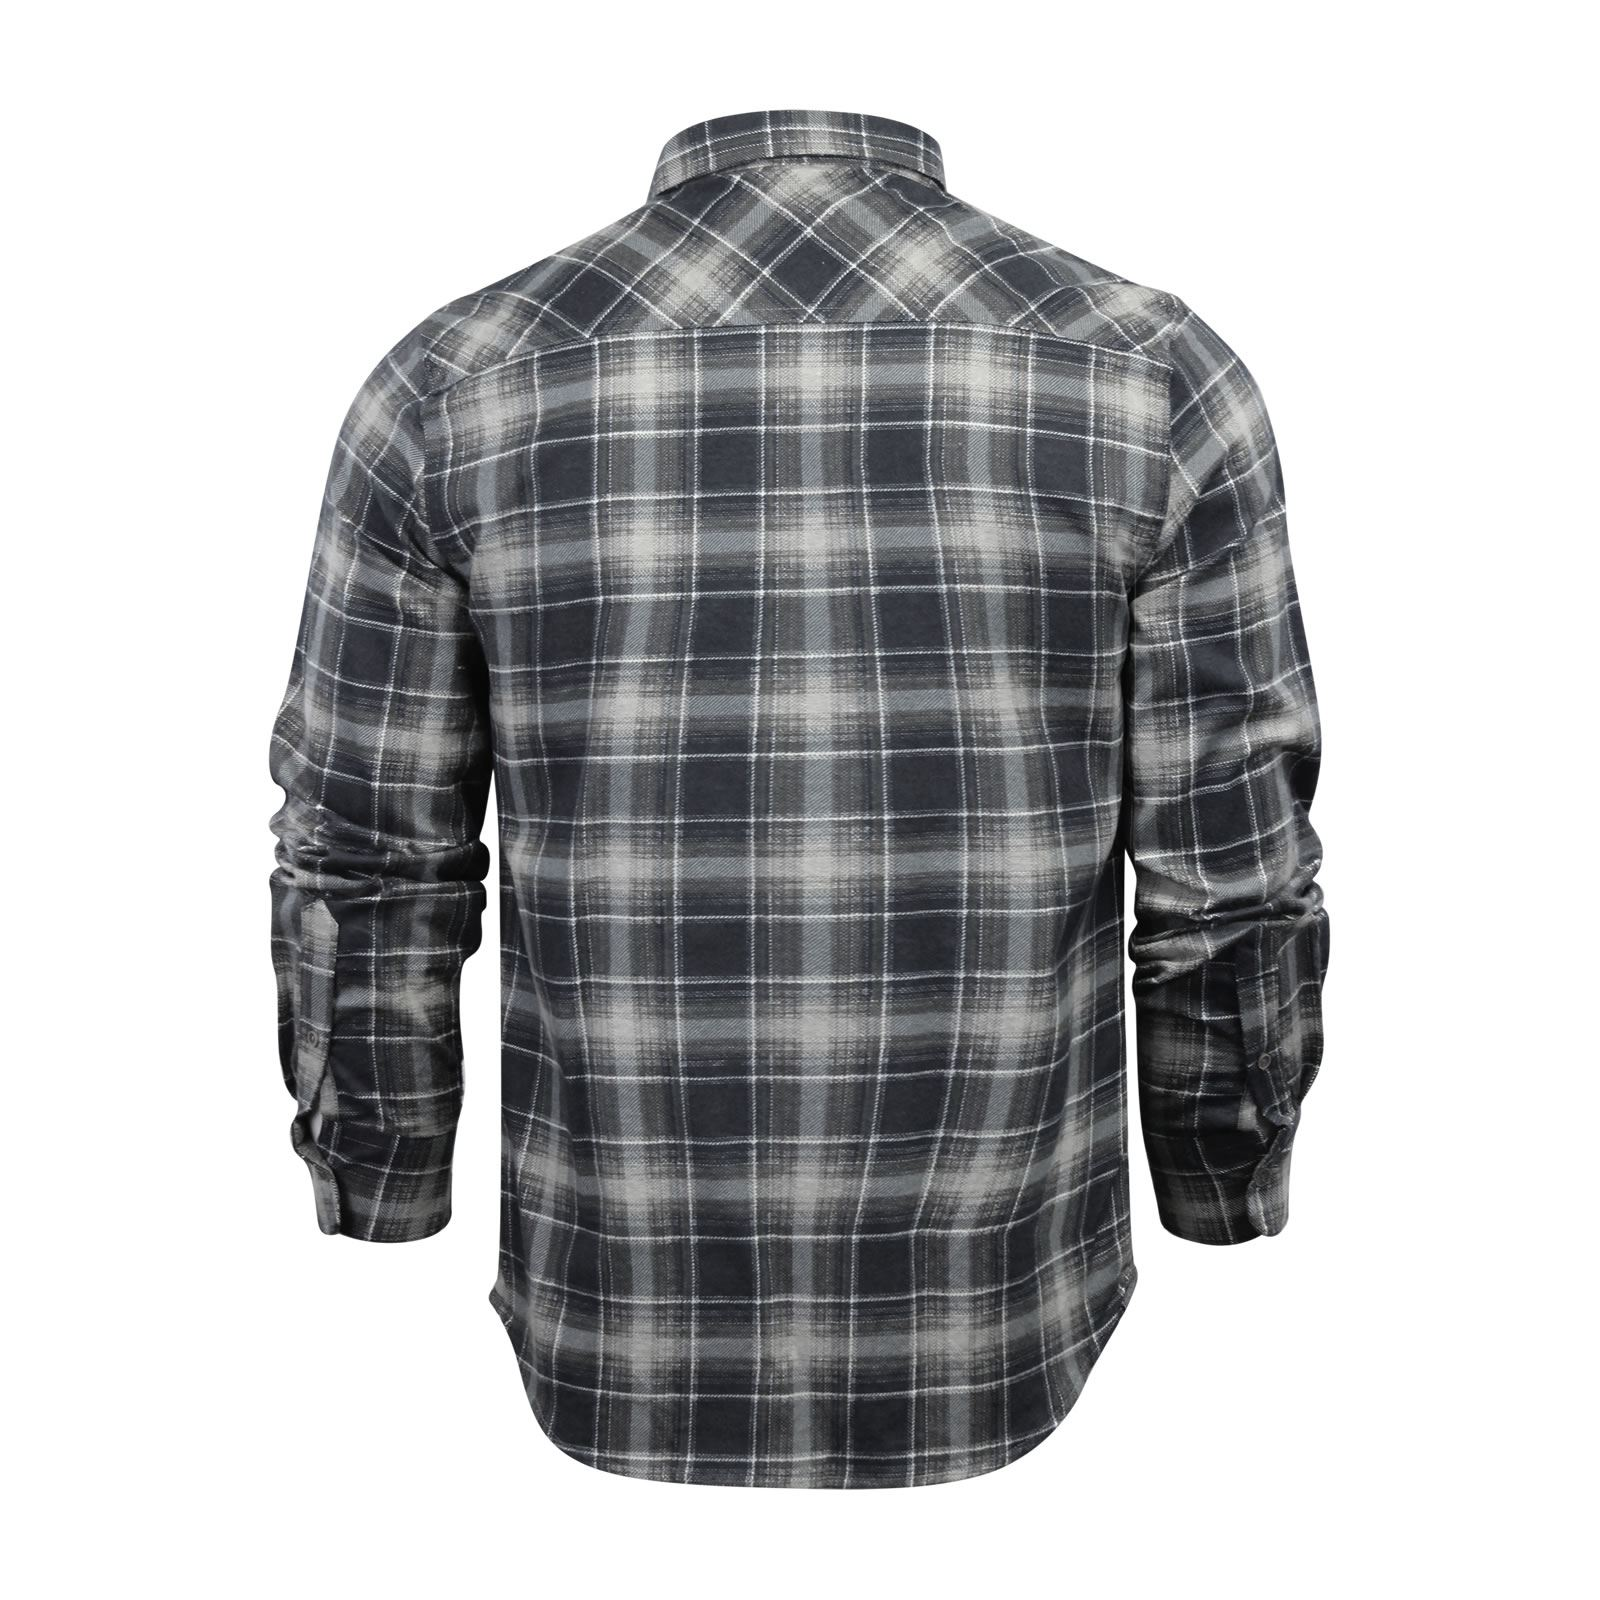 Mens-Check-Shirt-Brave-Soul-Flannel-Brushed-Cotton-Long-Sleeve-Casual-Top thumbnail 95